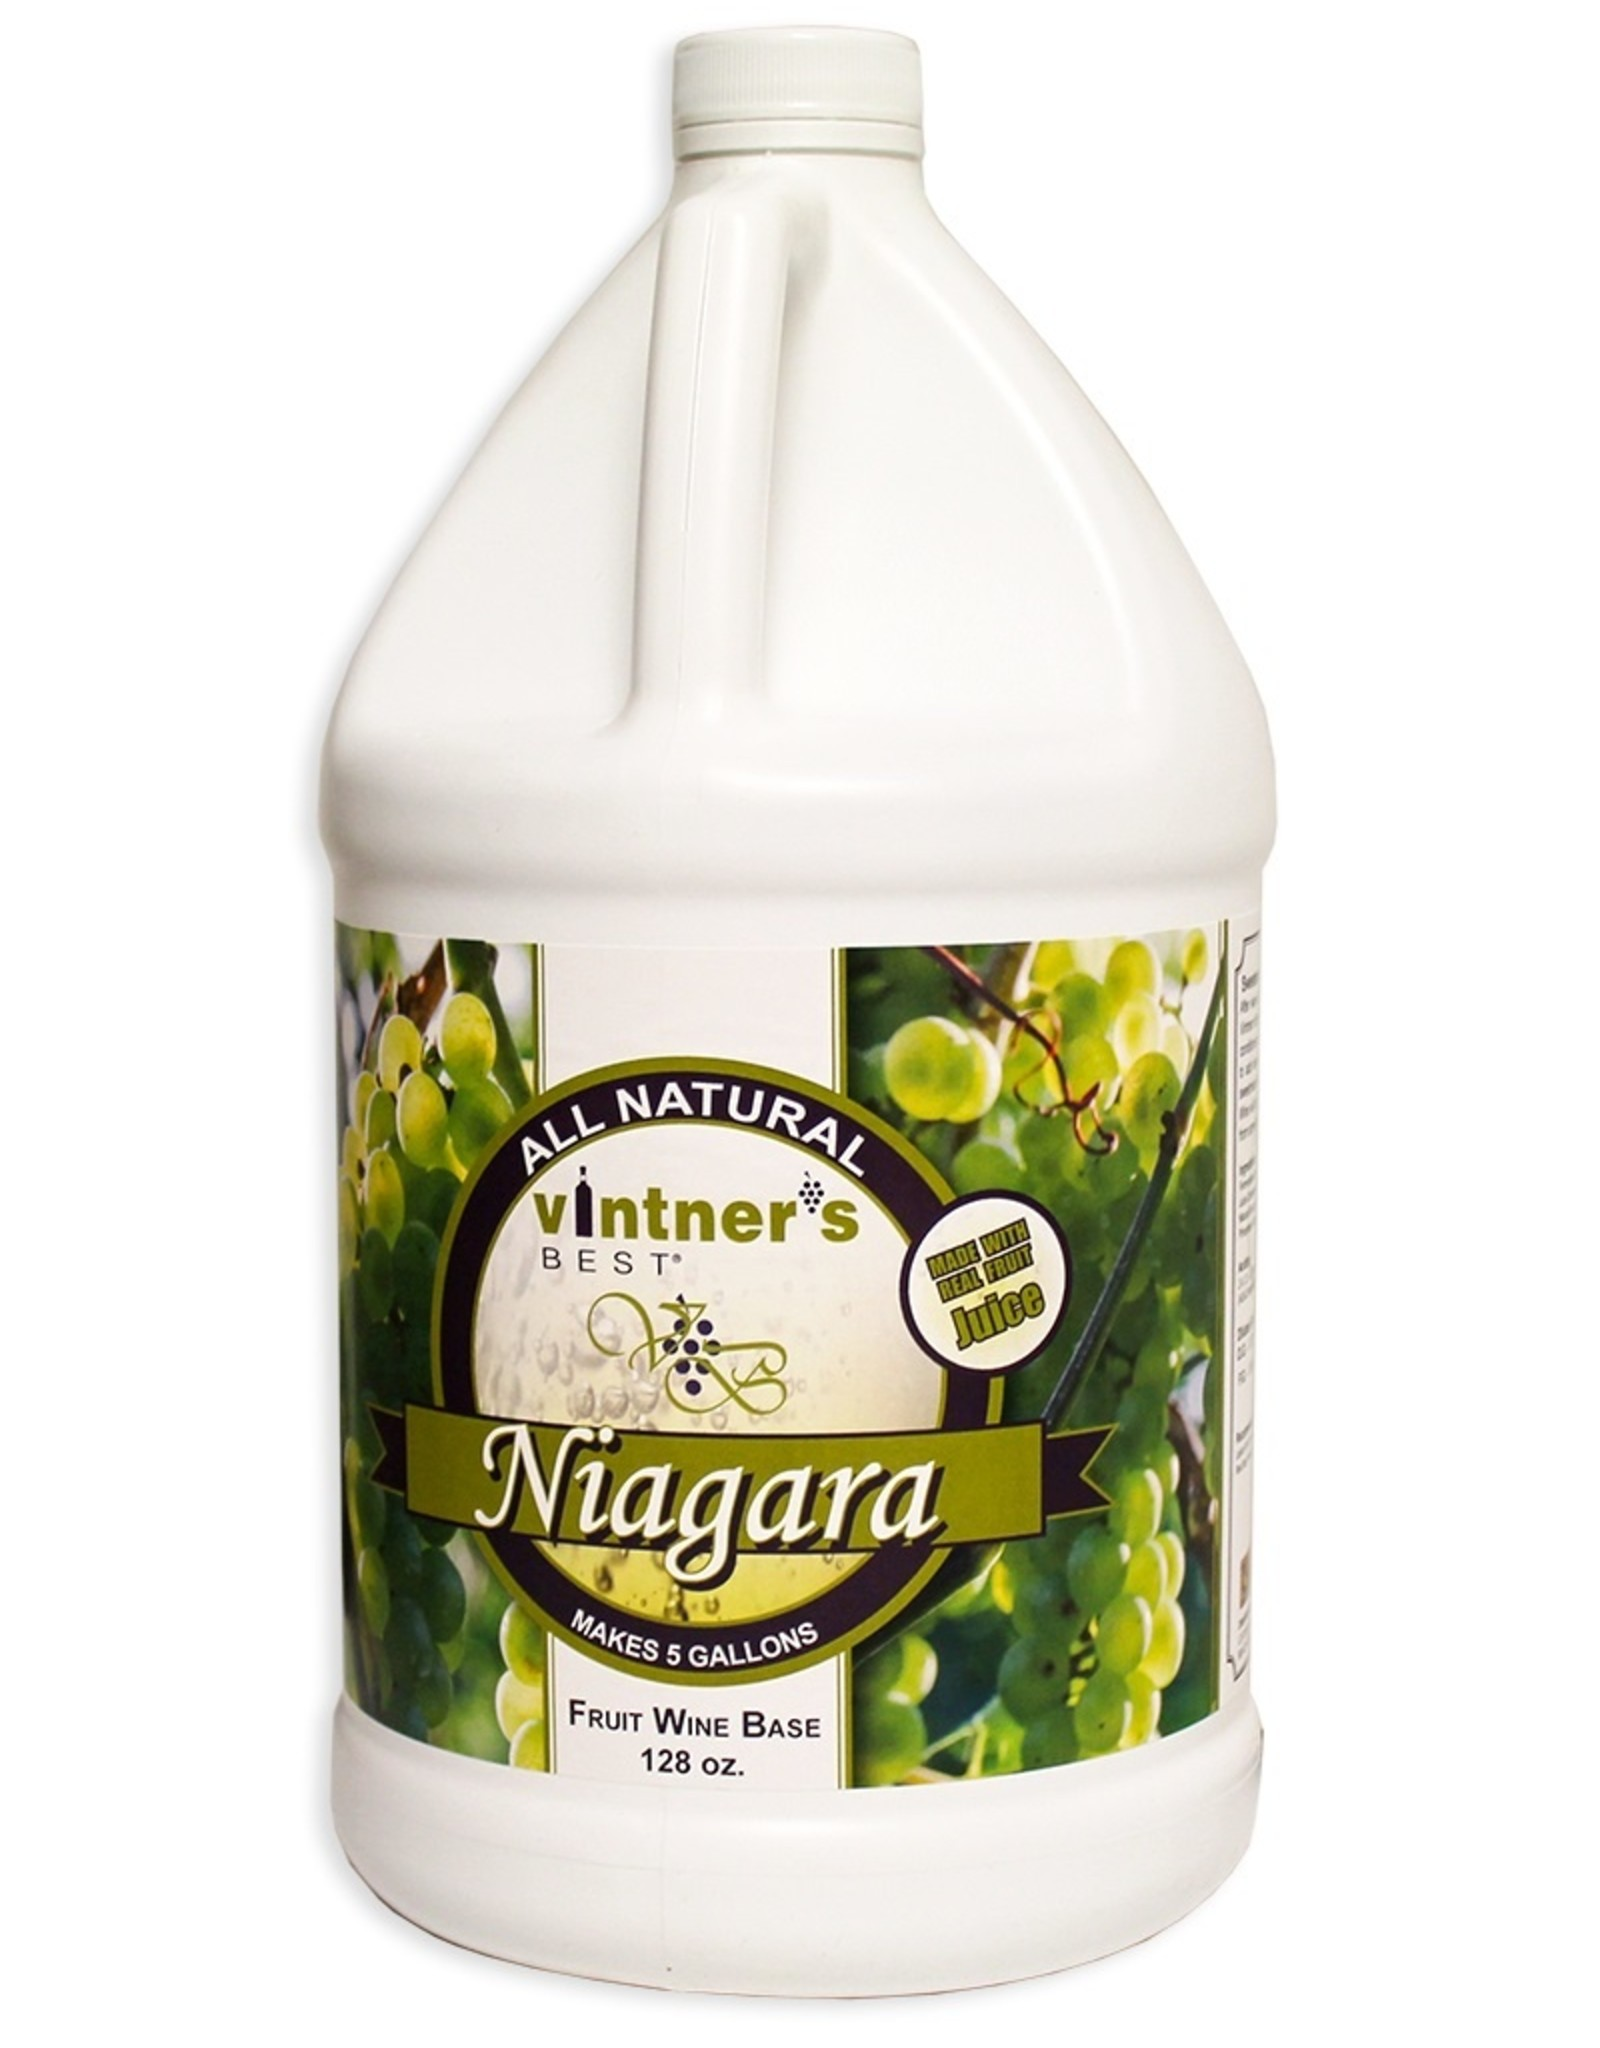 NIAGARA WINE BASE 128 OZ (1 GALLON)